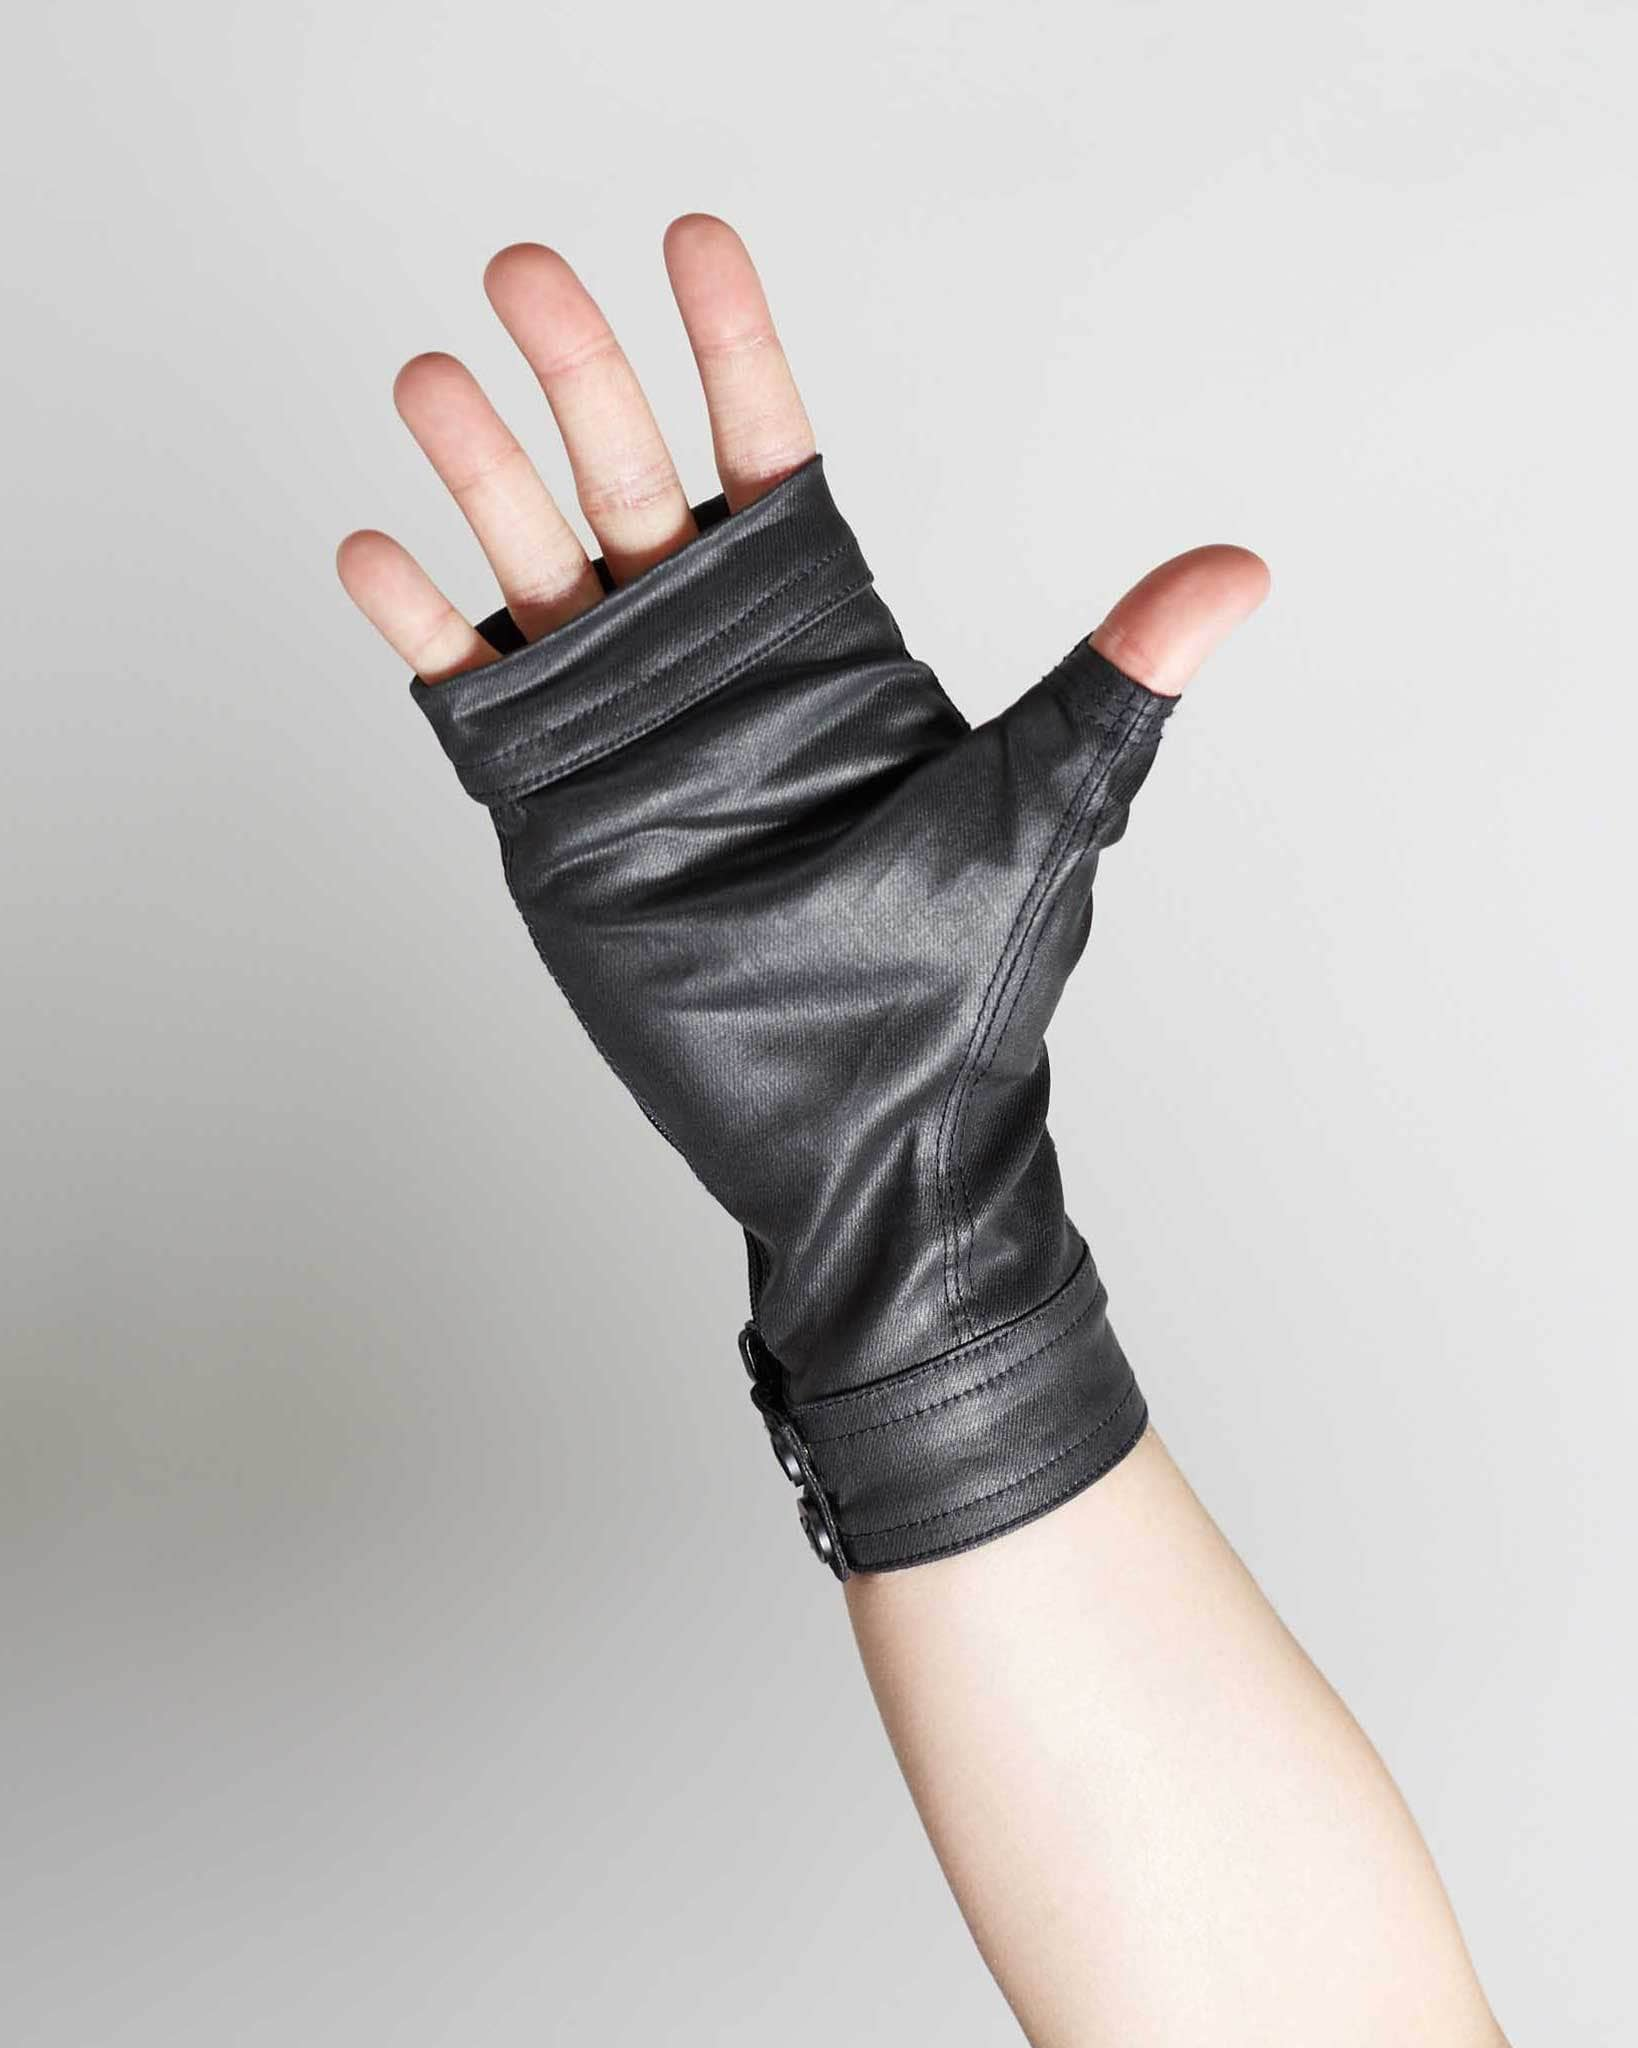 waxed denim high fashion gloves, made by hand